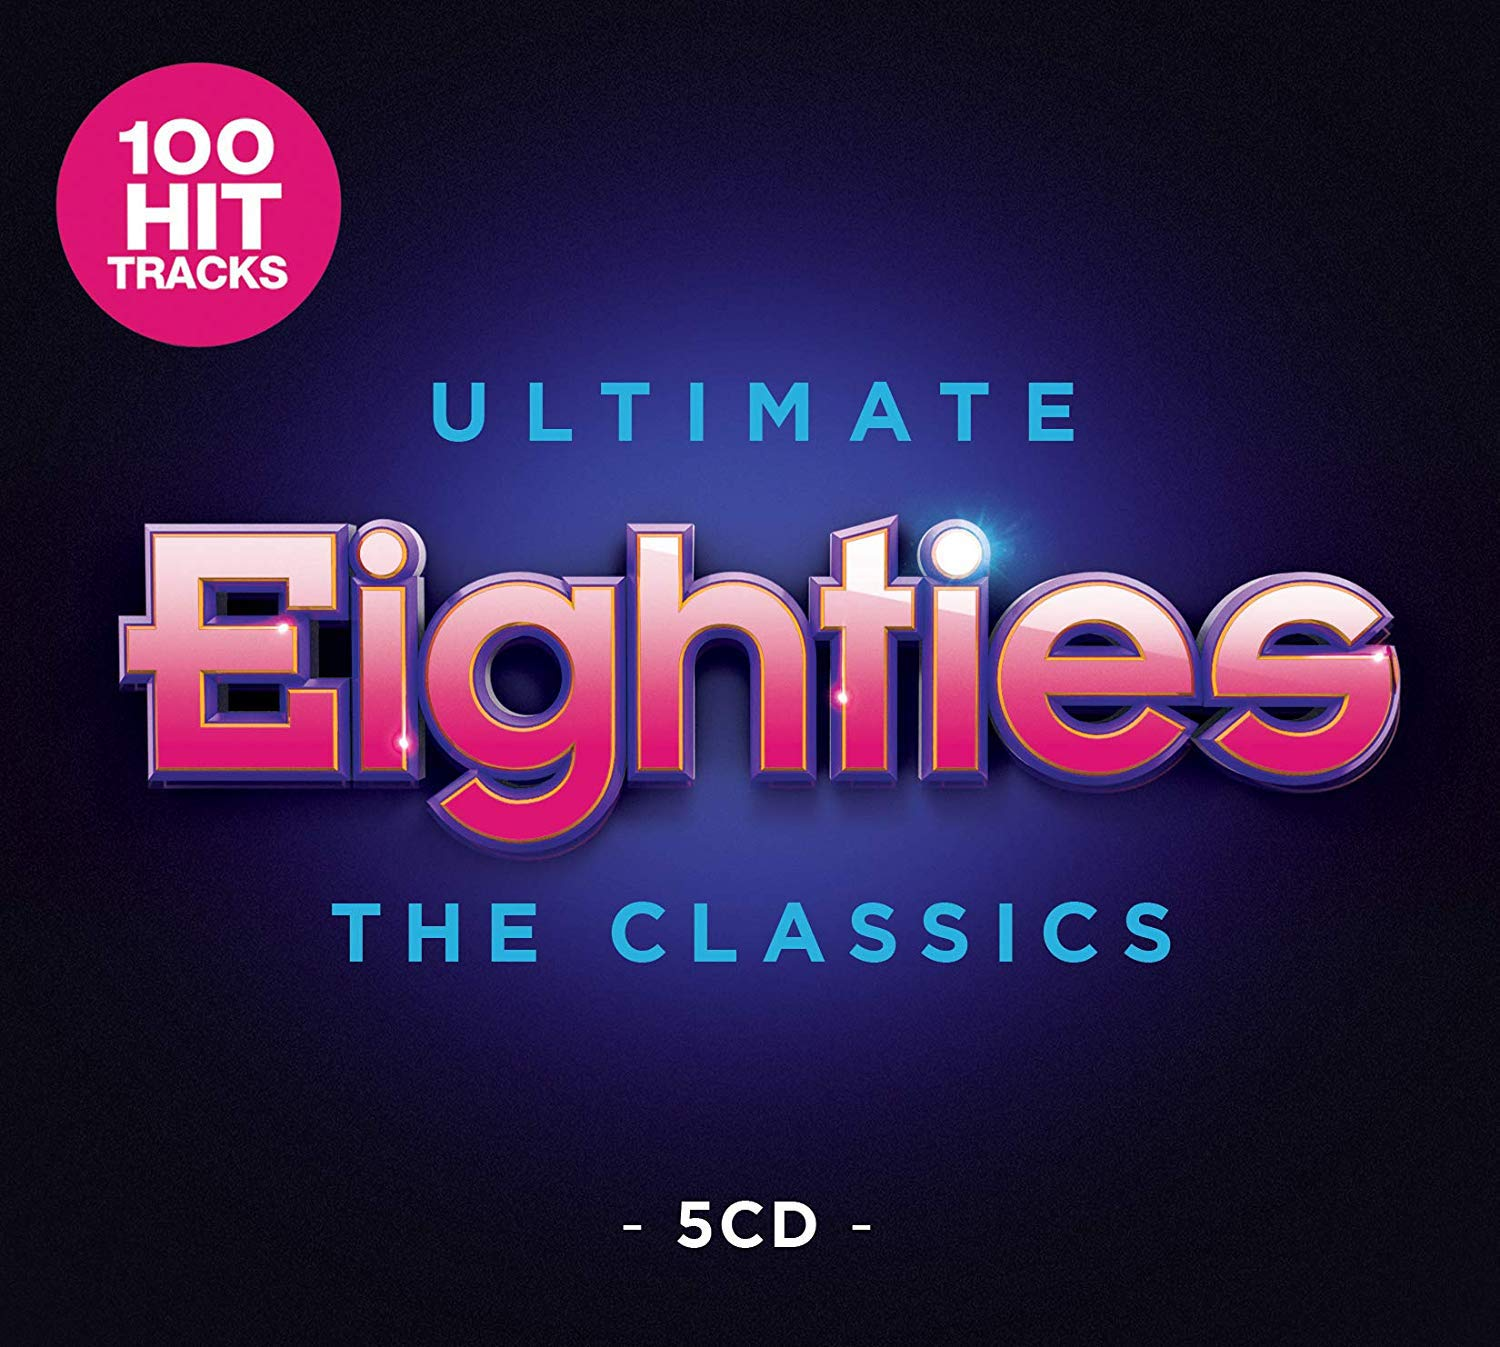 VA - Ultimate Eighties The Classics (5CD, 2019)